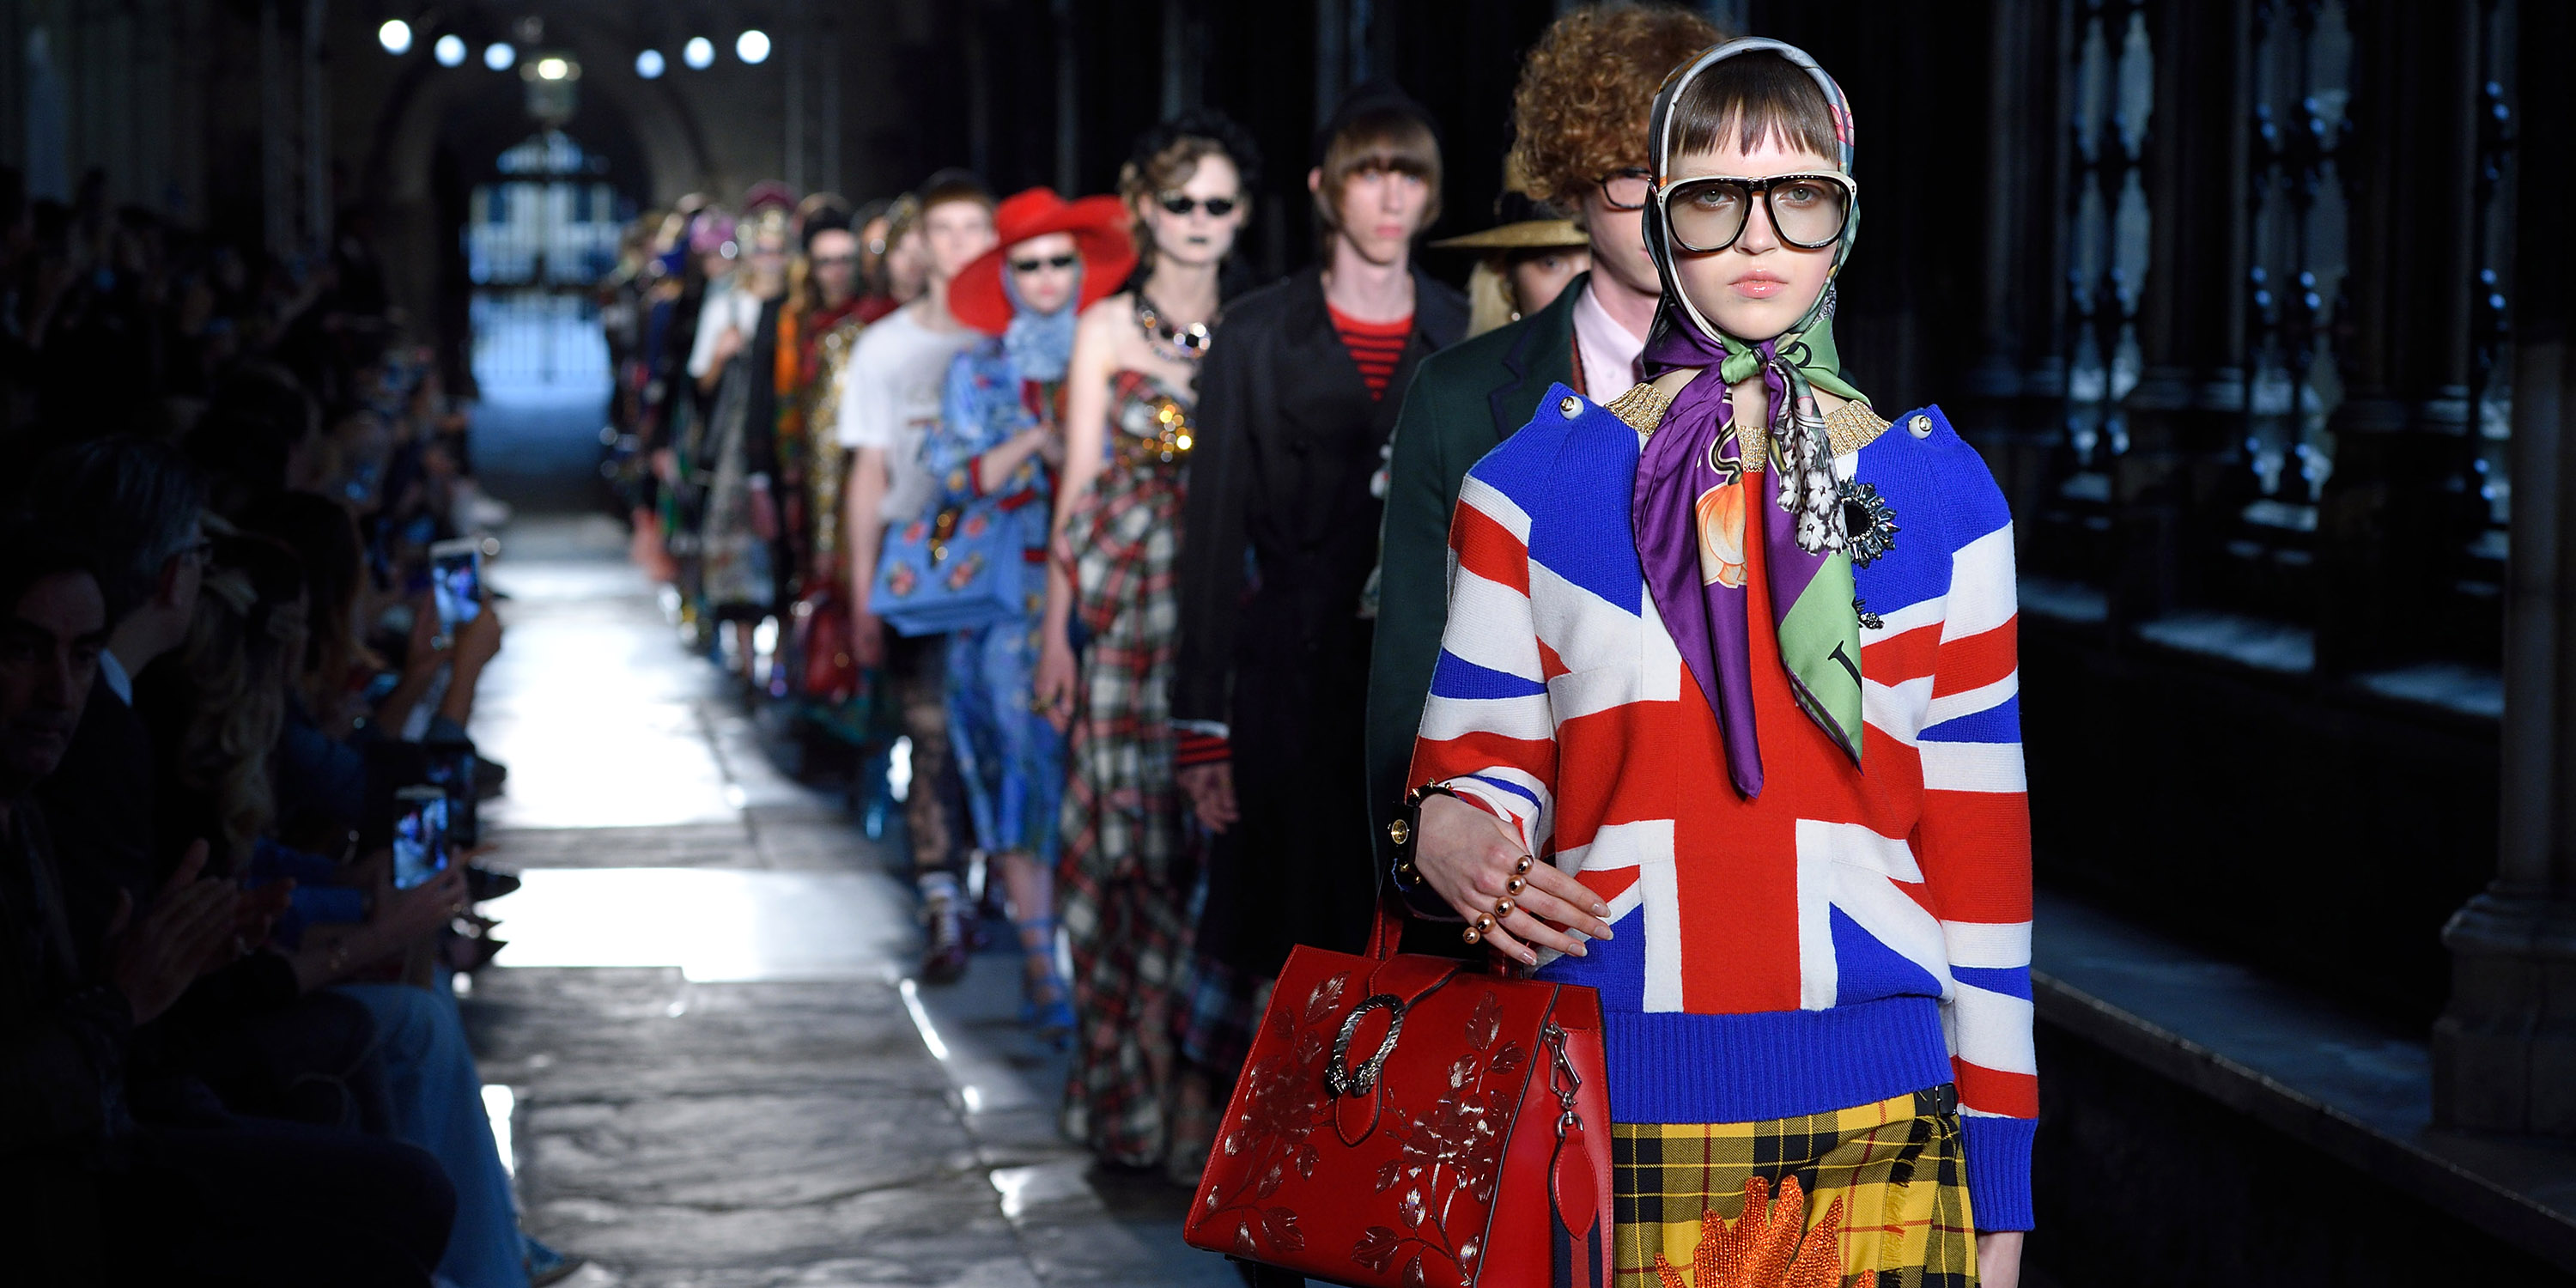 Gucci's Cruise 2019 Show Sets Sail for Arles, France